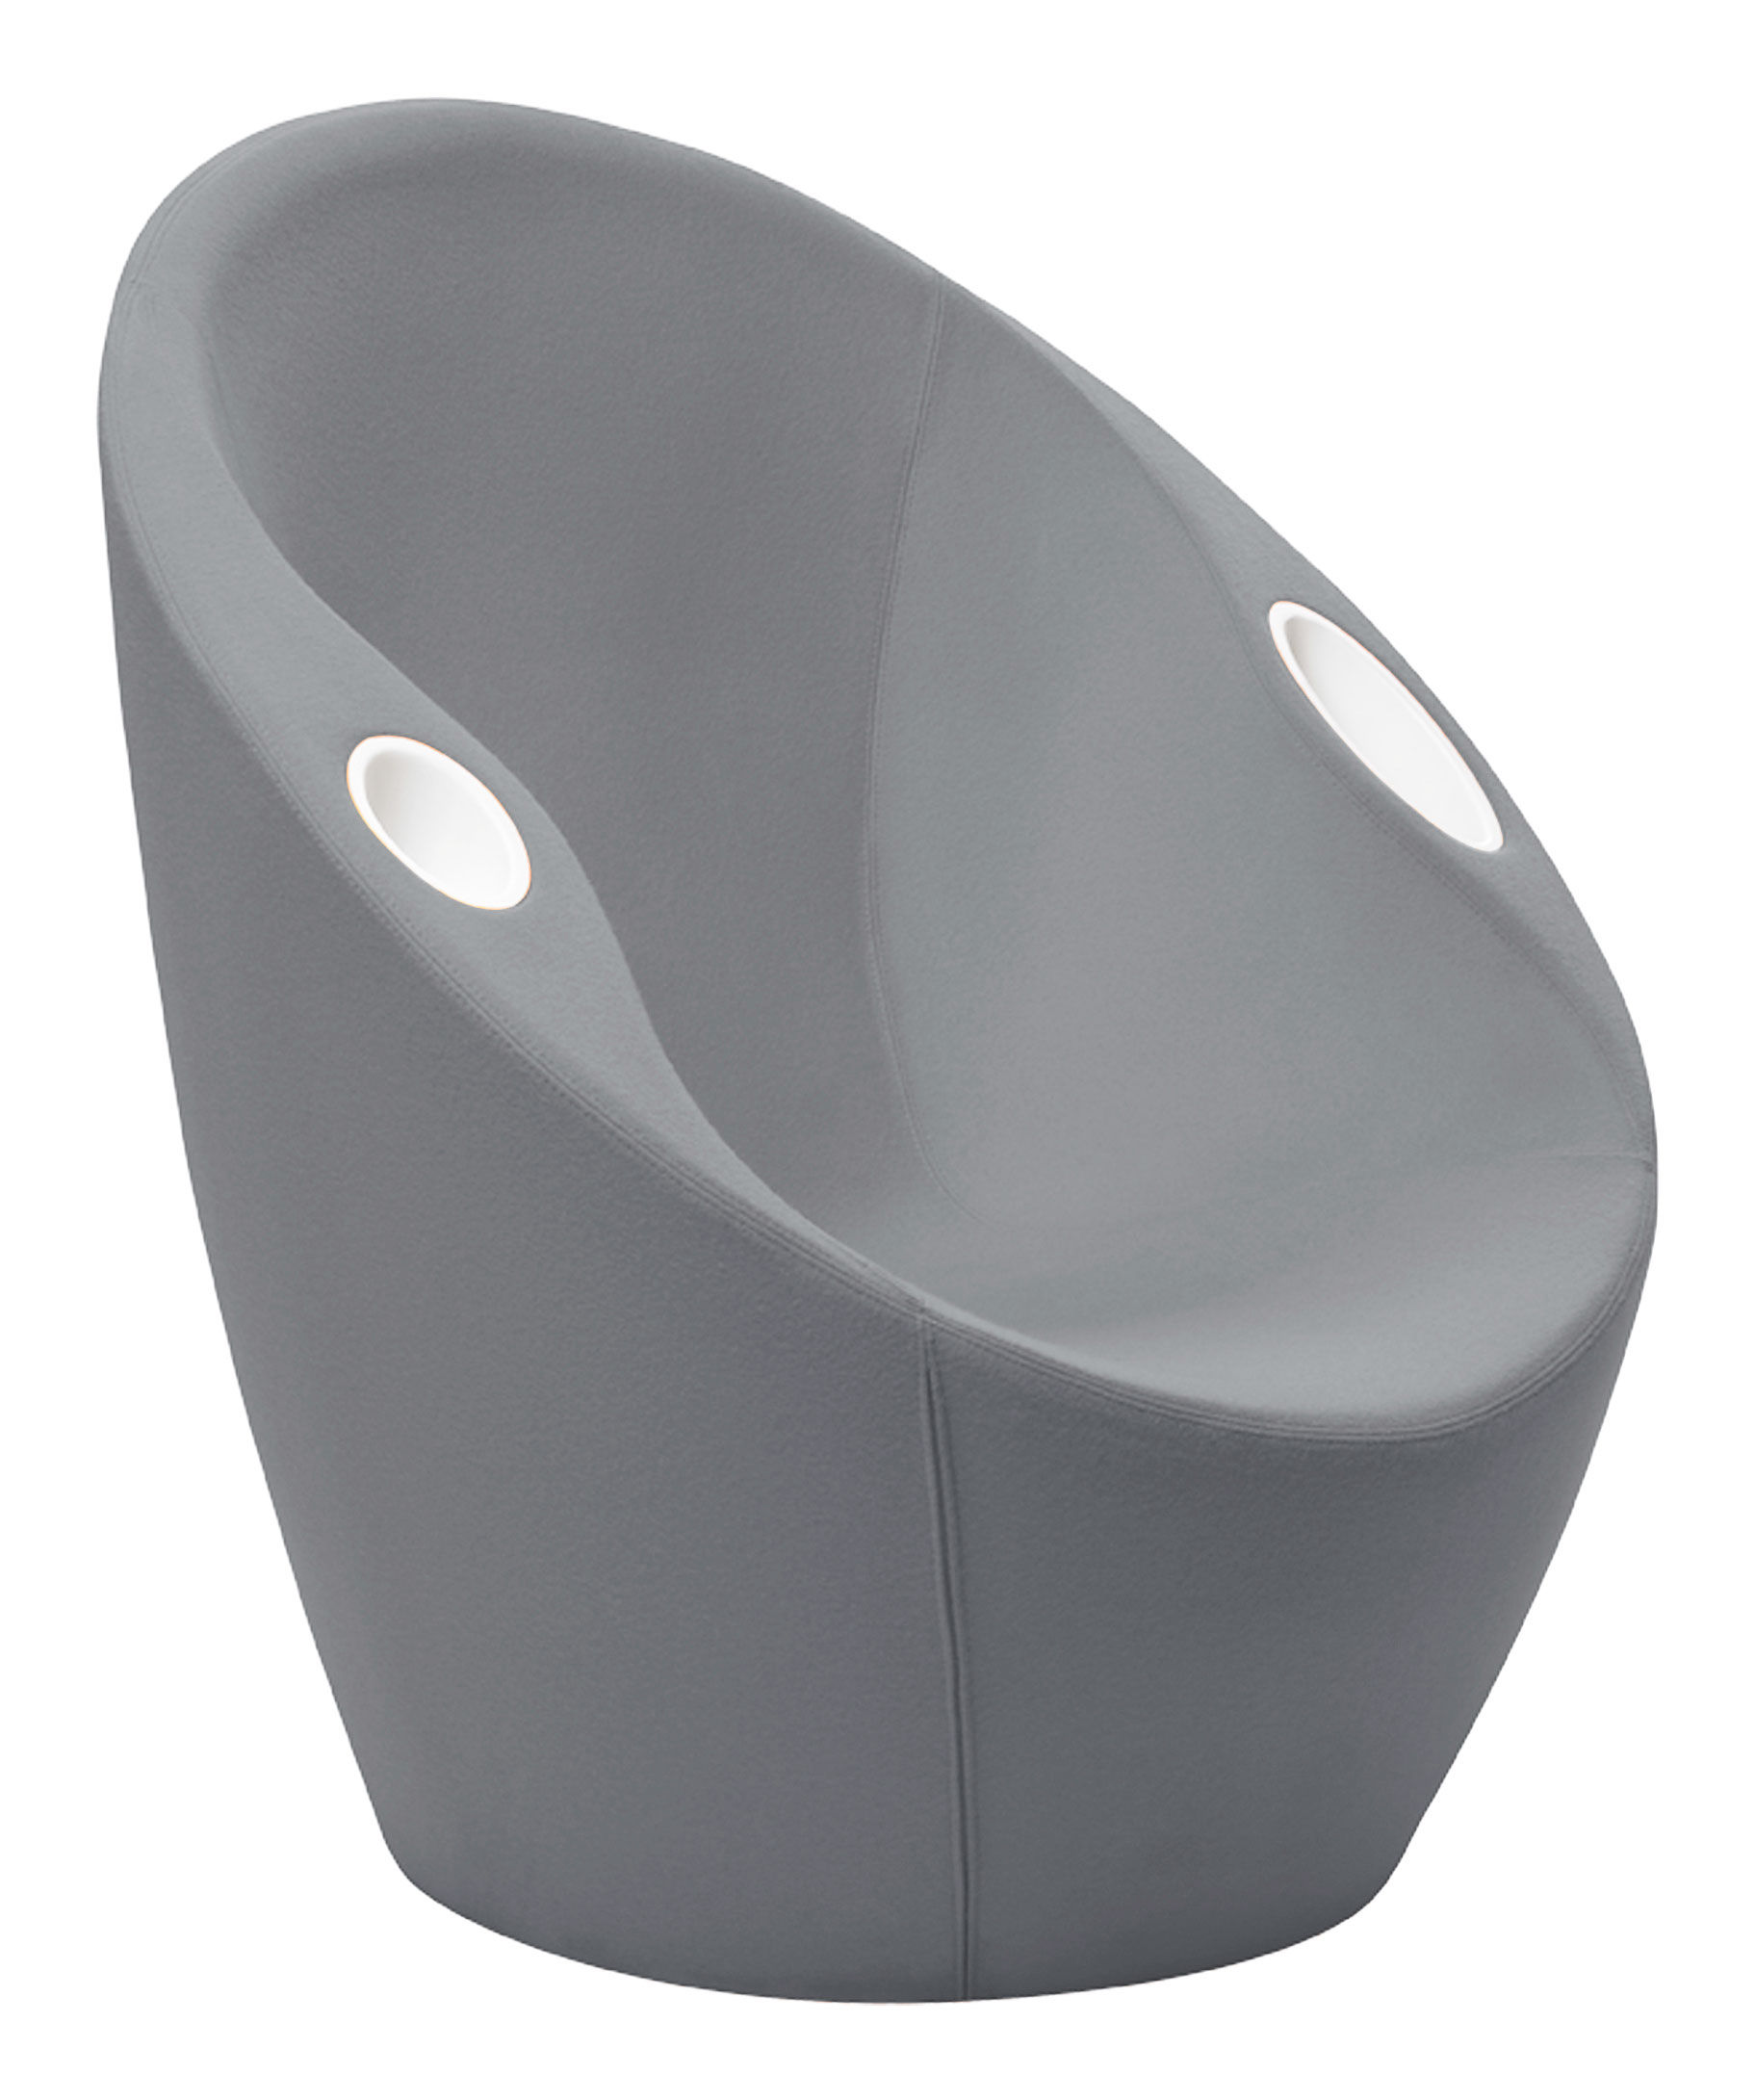 Furniture - Armchairs - Ouch Padded armchair - With elbow rest by Casamania - Grey - Fabric, Foam, Metal